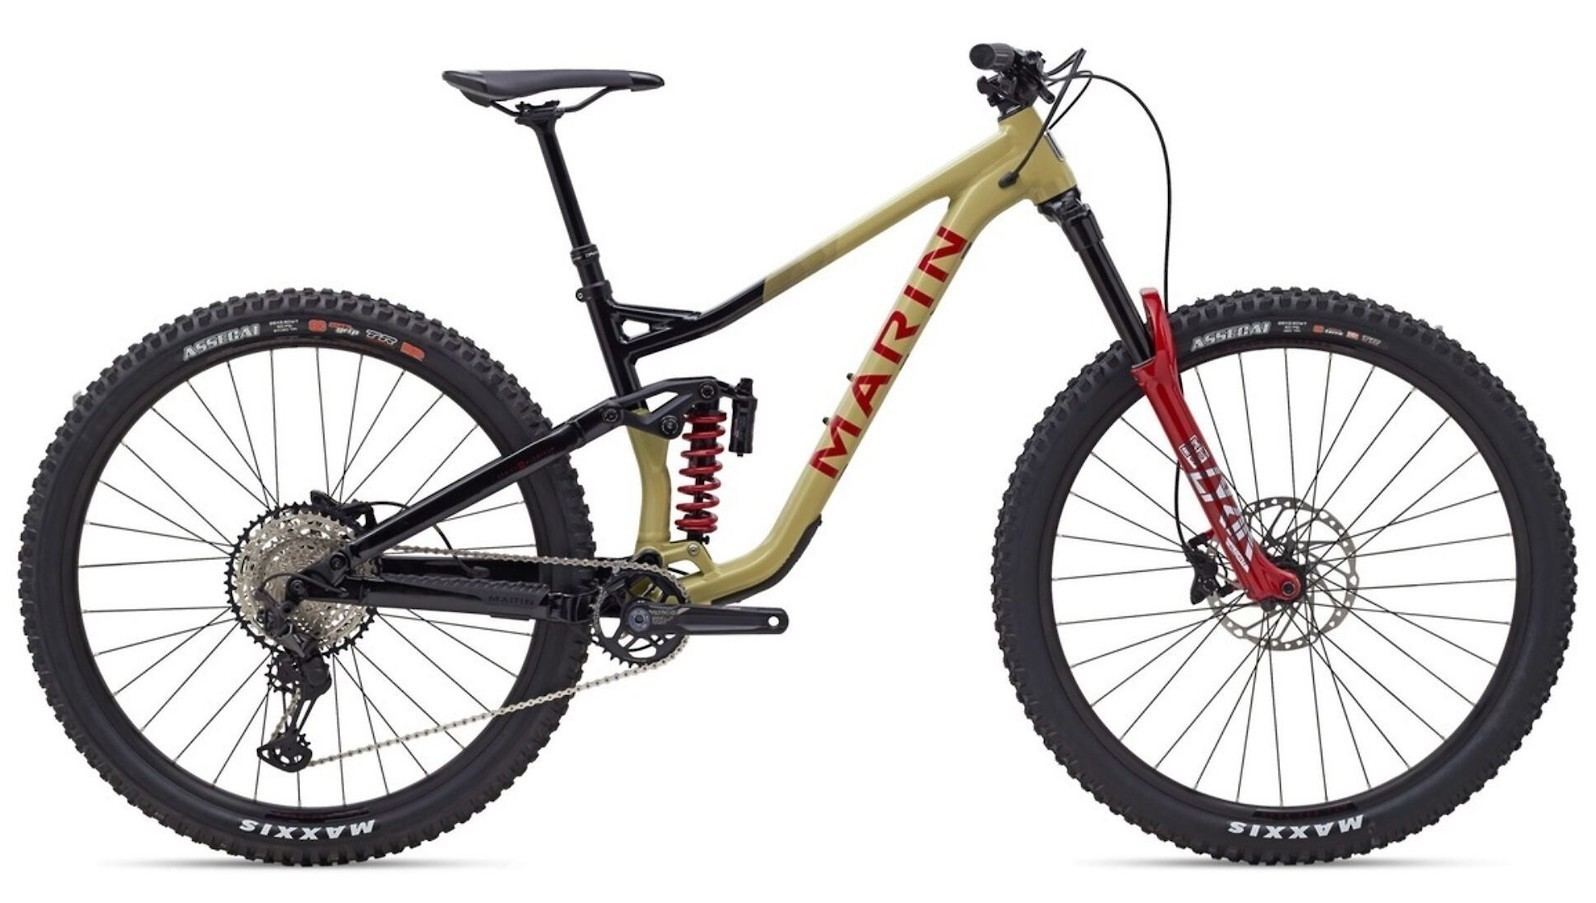 2021 Marin Alpine Trail XR, $3,599